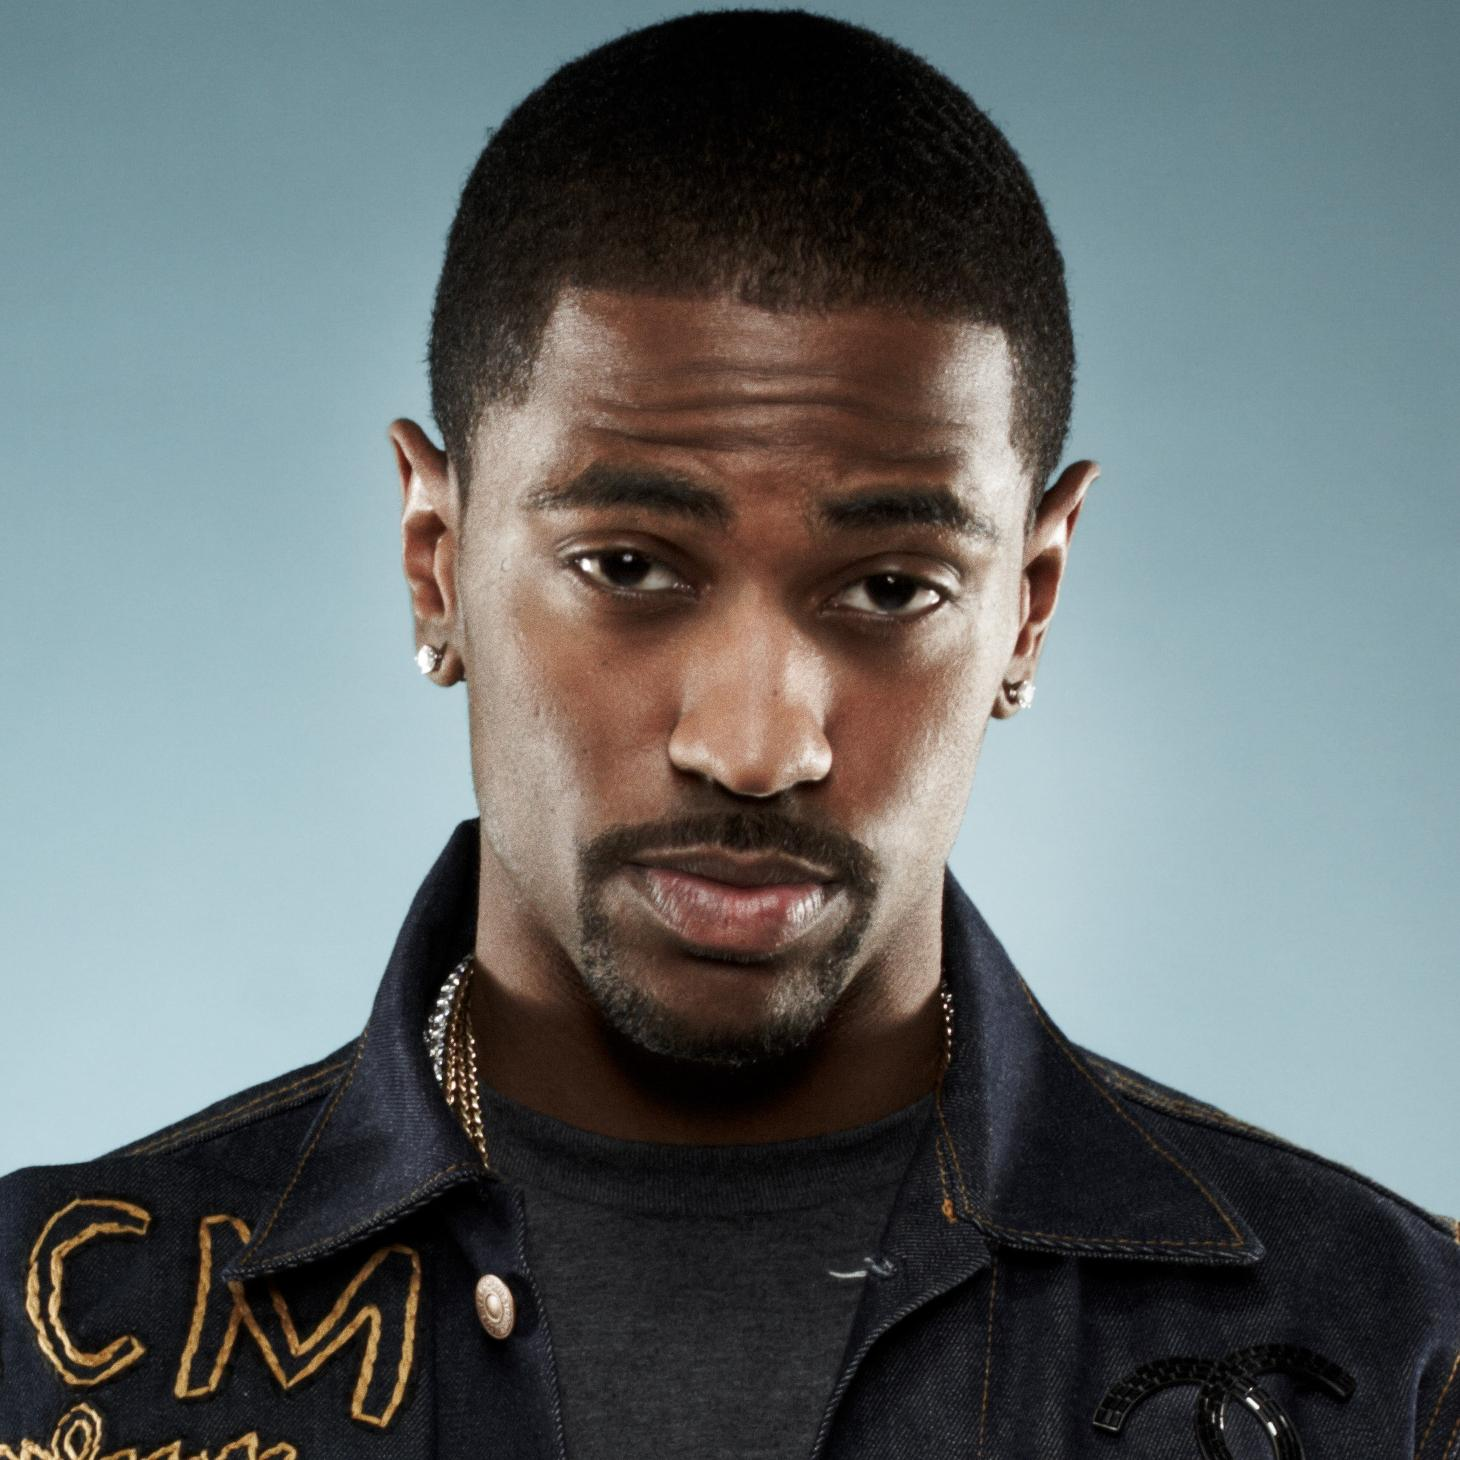 Big Sean Bio, Net Worth, Facts